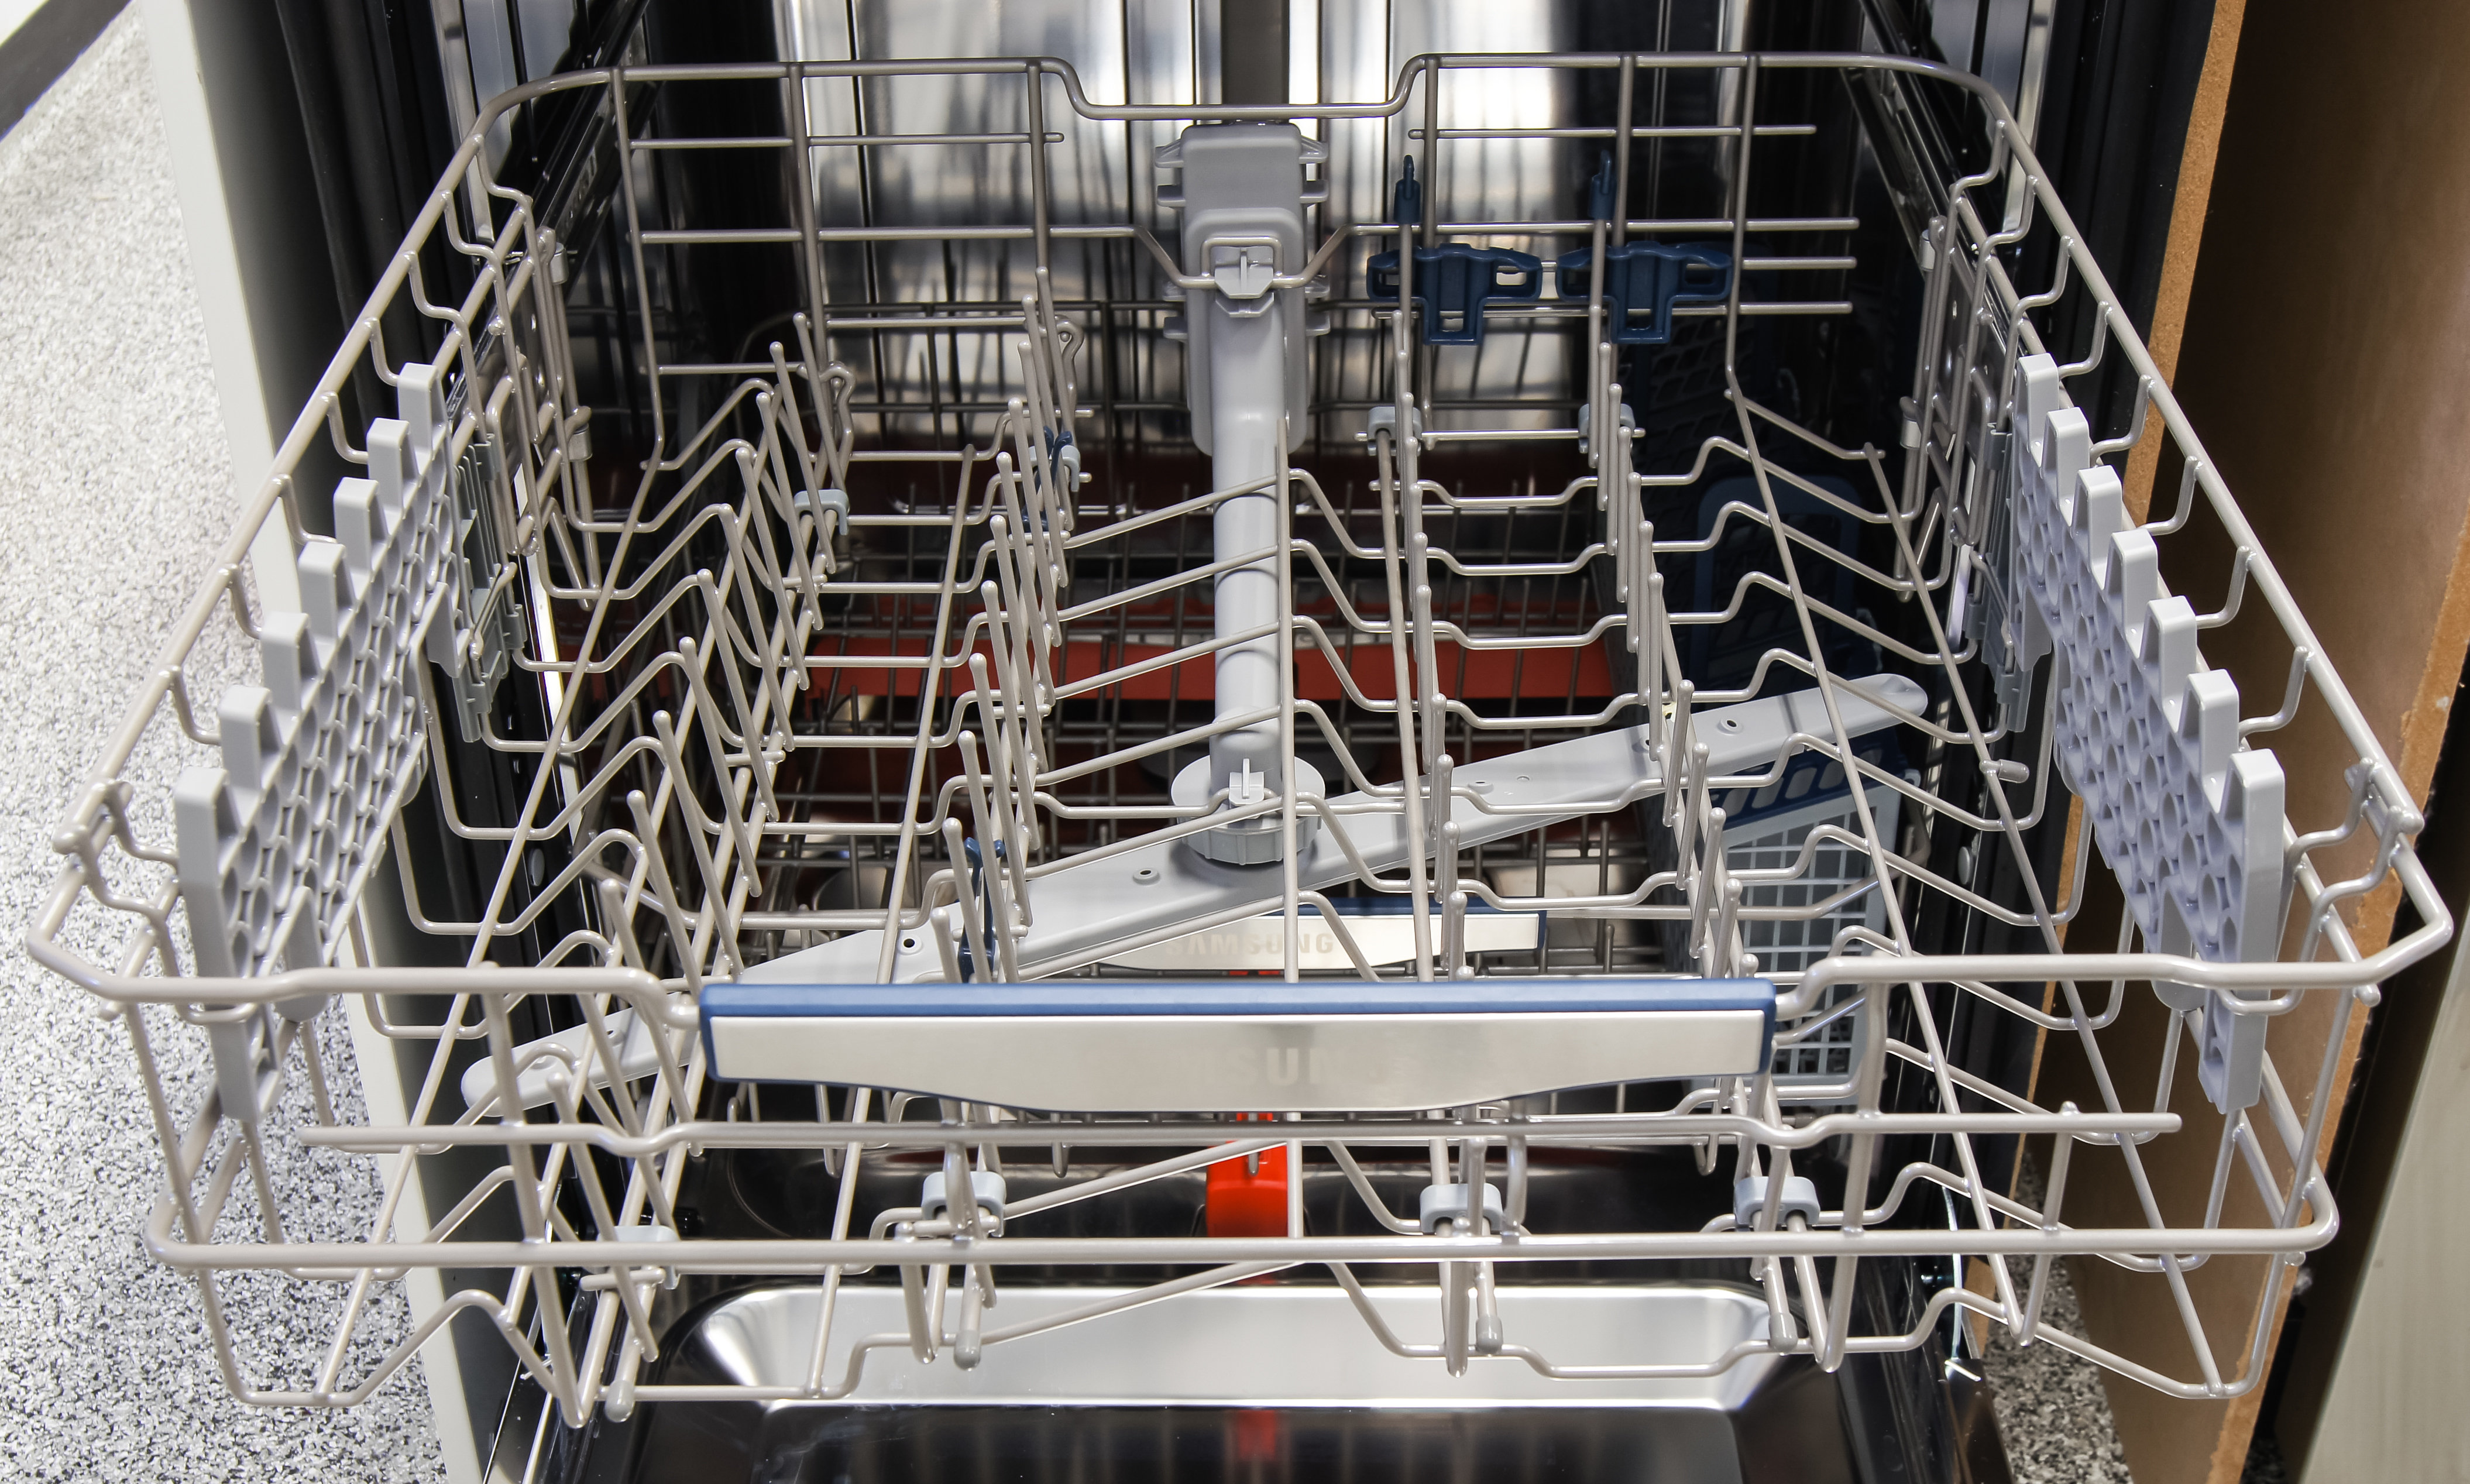 Oven Stabilizer Arm : Samsung dw h us dishwasher review reviewed